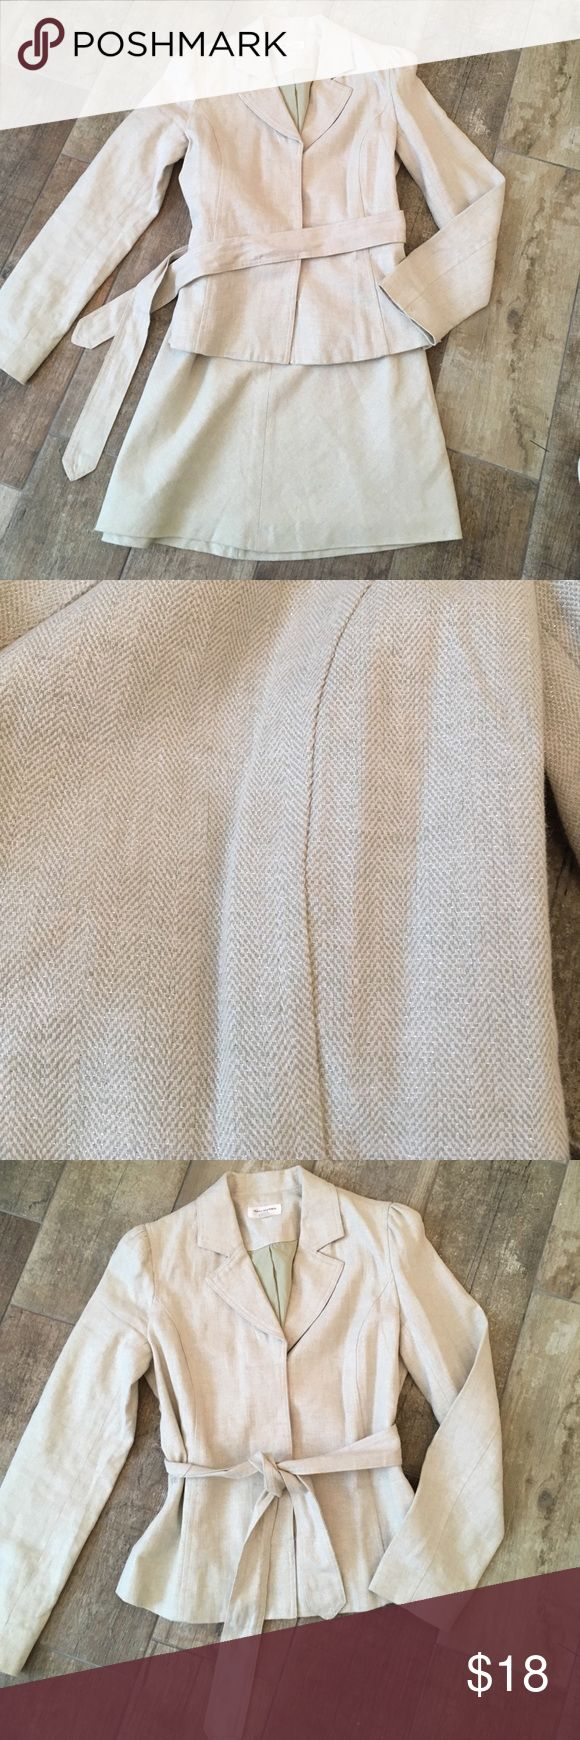 Mint Green Shimmery Suit Spring perfect mint green skirt suit with shimmery silver throughout. Includes a Belted blazer and A-line skirt. Both fully lined. Isaaac Mizrahi for Target. Excellent condition. Both size 4. Isaac Mizrahi Jackets & Coats